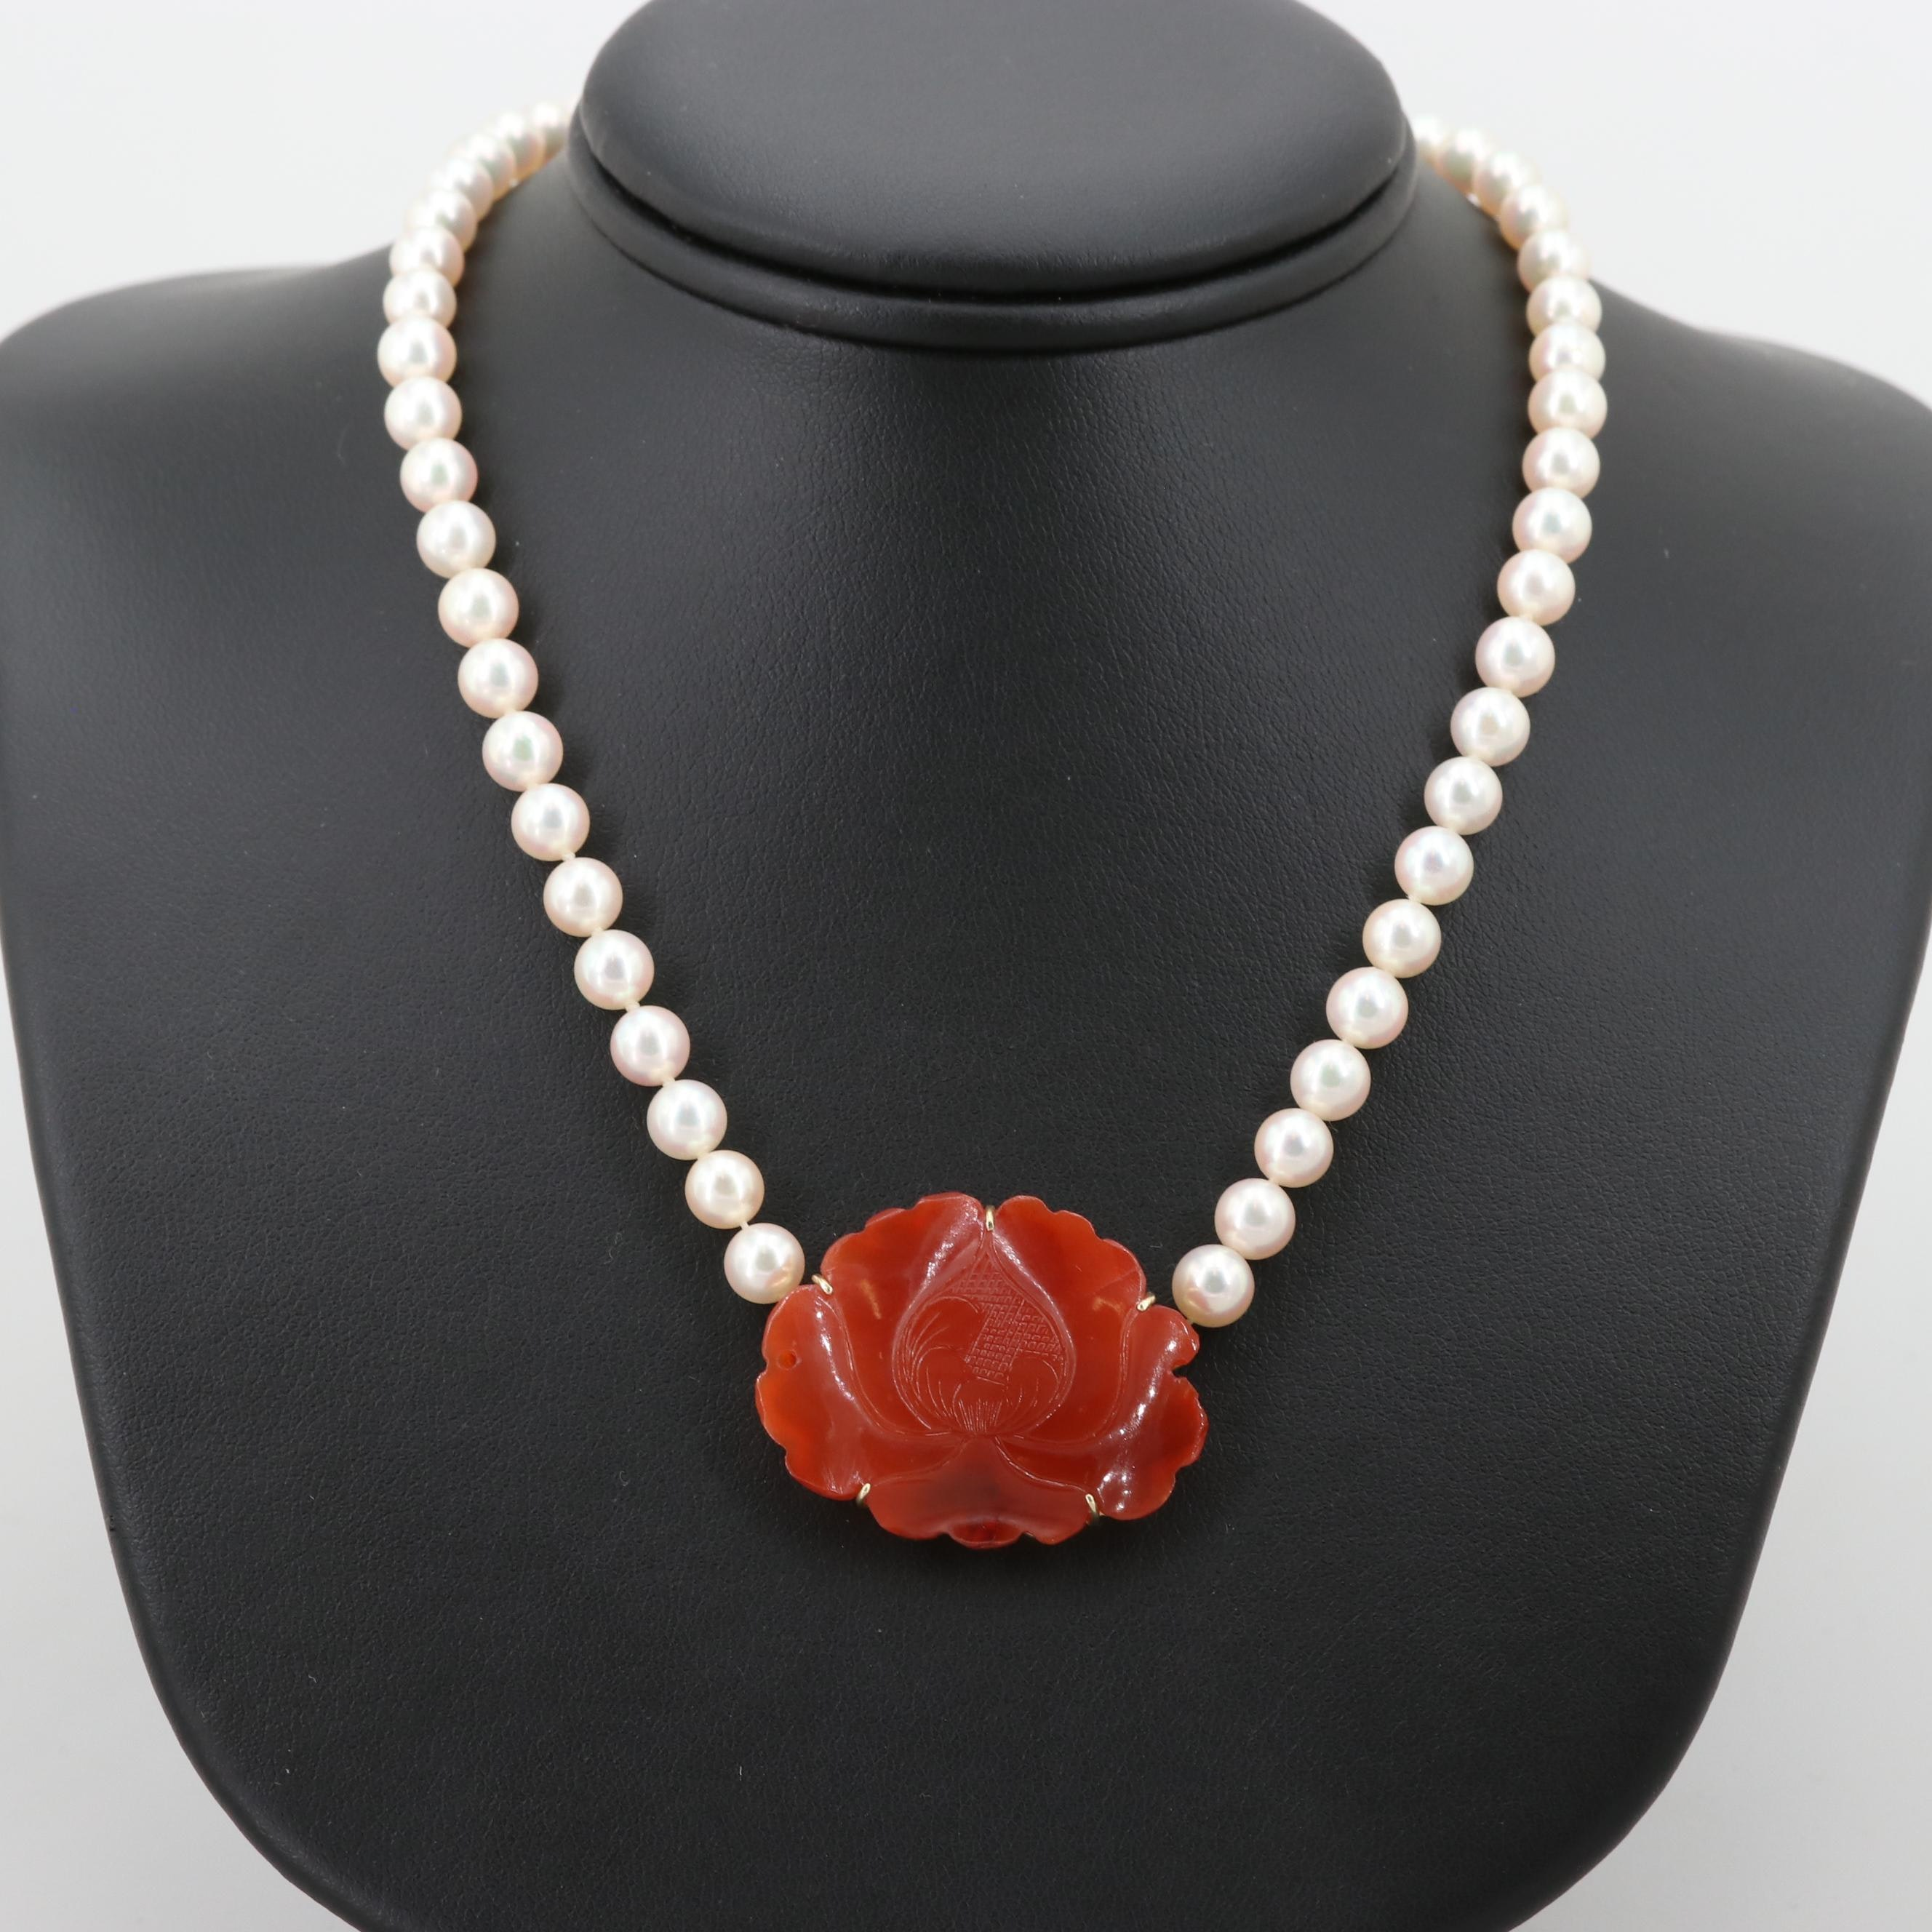 Cultured Pearl and Carved Carnelian Bead Necklace with 14K Yellow Gold